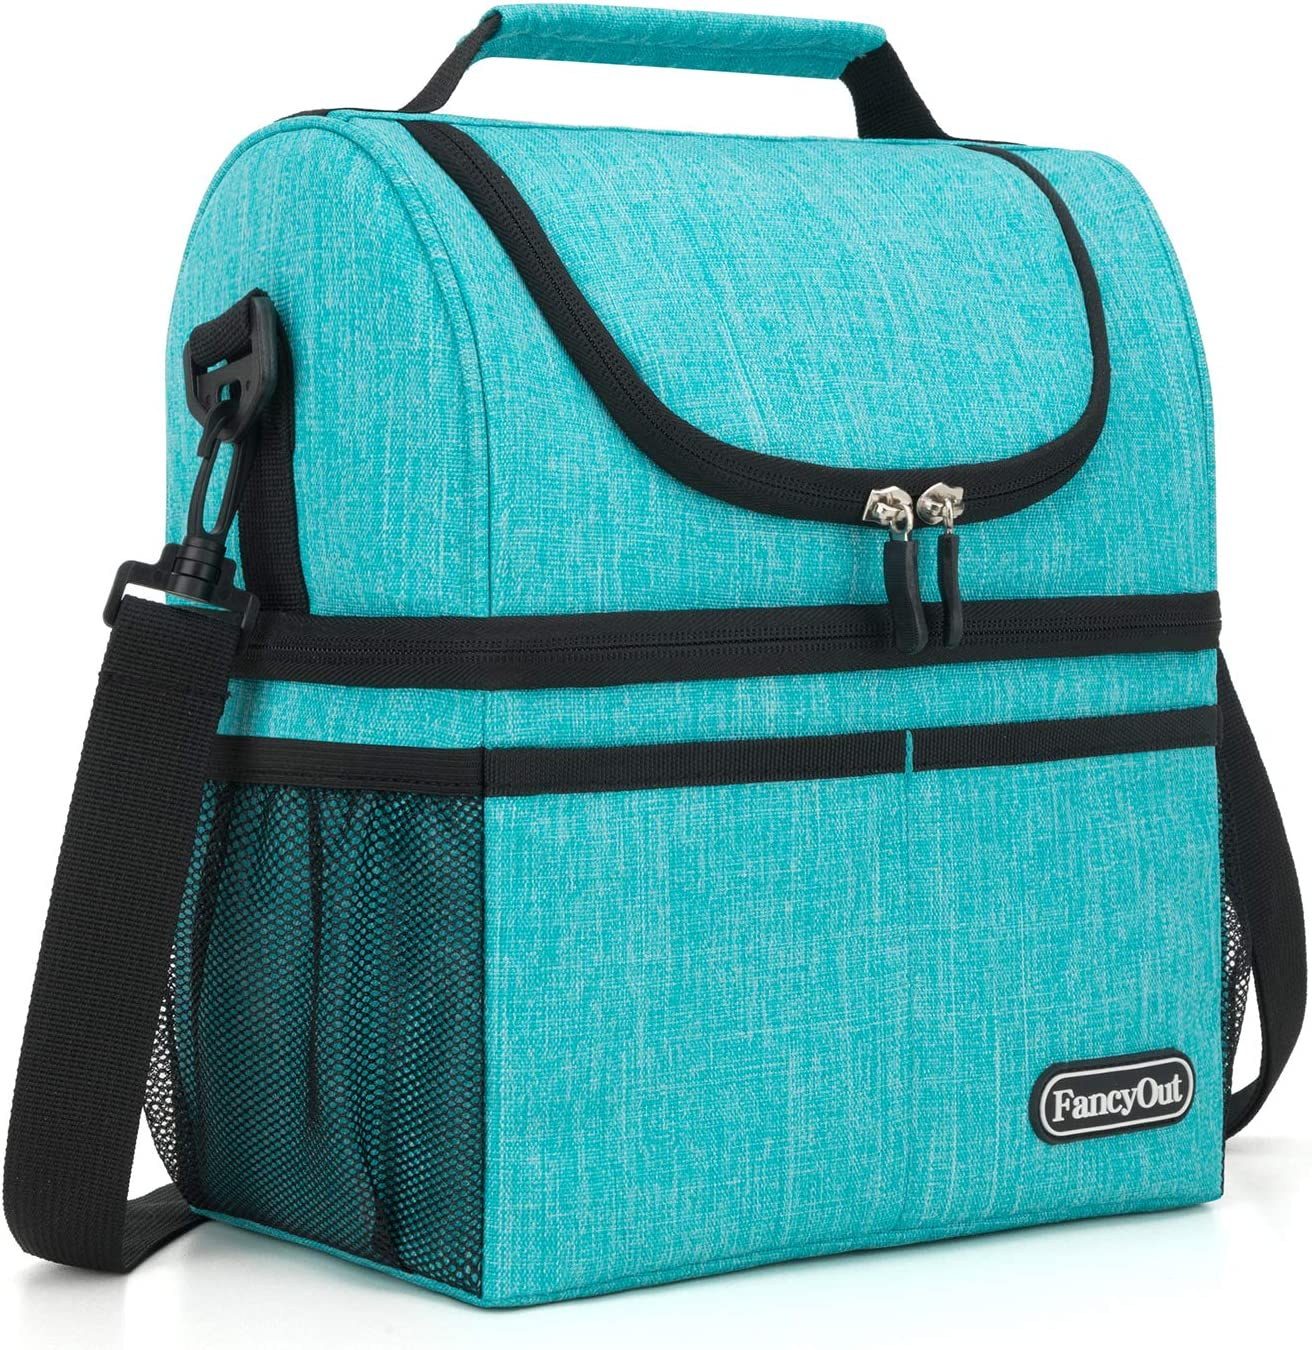 Insulated Lunch Bag with Dual Compartment, Leak Proof Liner Cooler Bag with Adjustable Shoulder Strap, Water-Resistant Lunch Box for Office/Picnic/Hiking/Beach (Style A-Indigo)